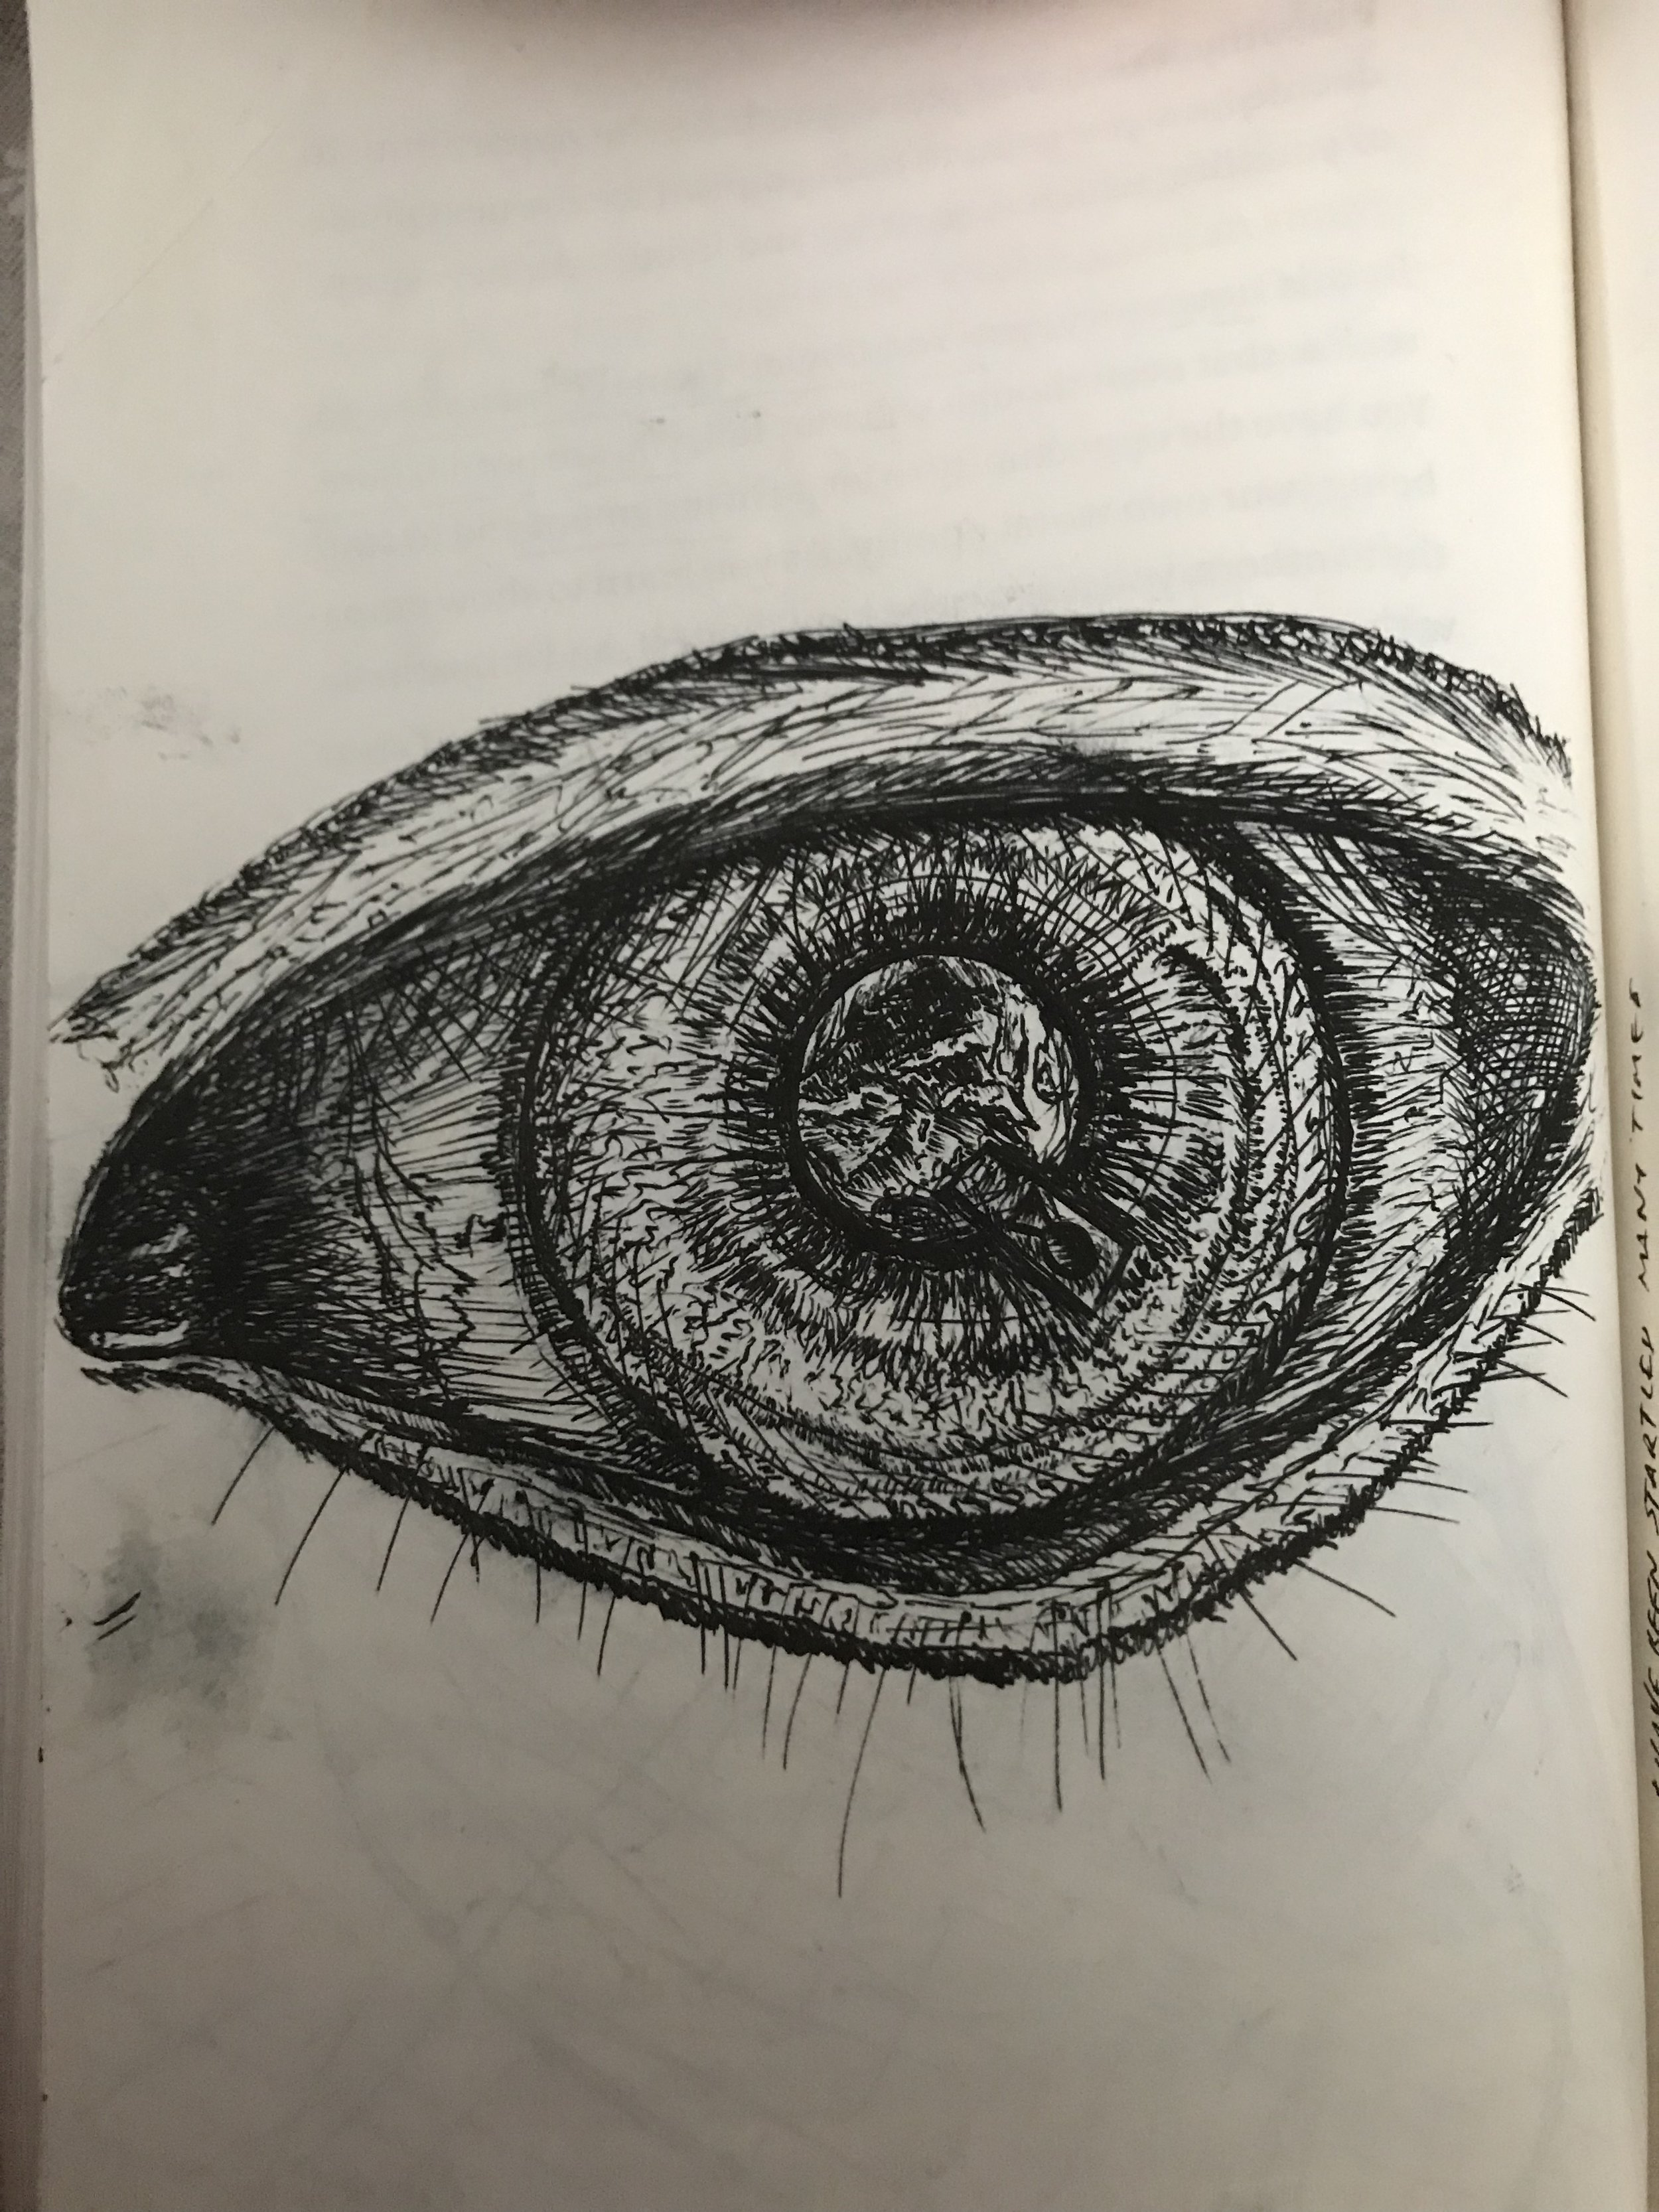 Eye of truth - Military veteran ptsd depression art therapy